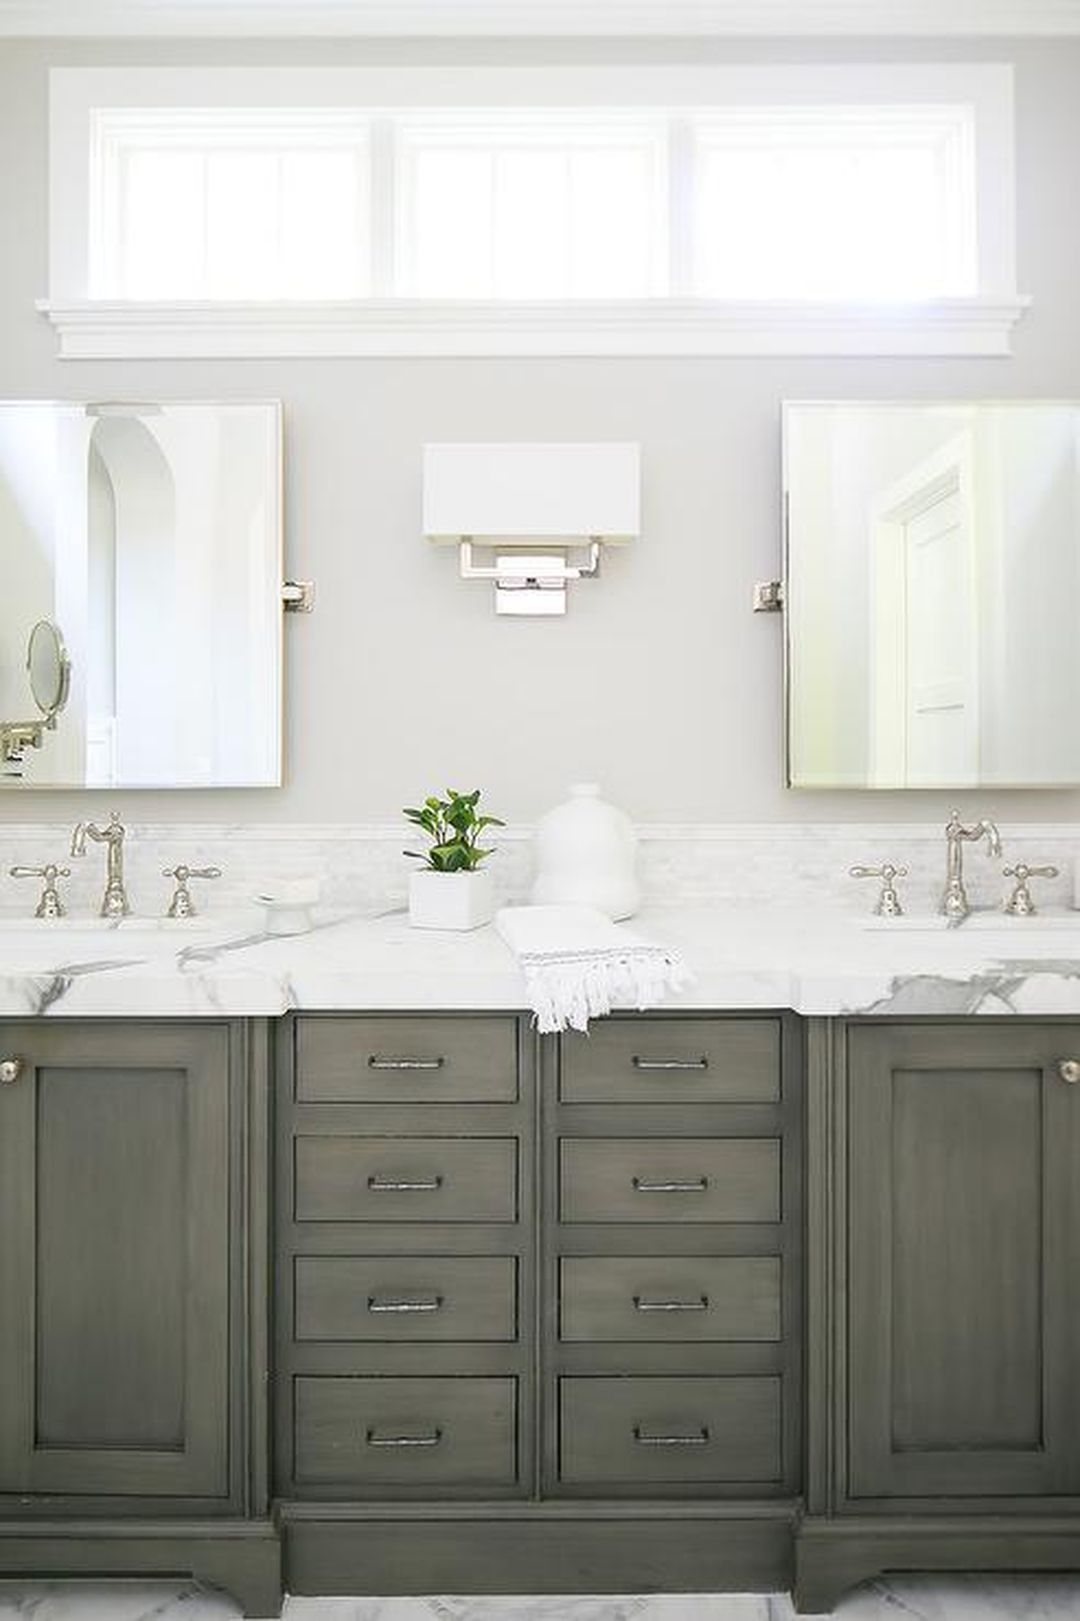 16 Outstanding Bathroom Vanity Design Ideas | Bathroom vanity ...